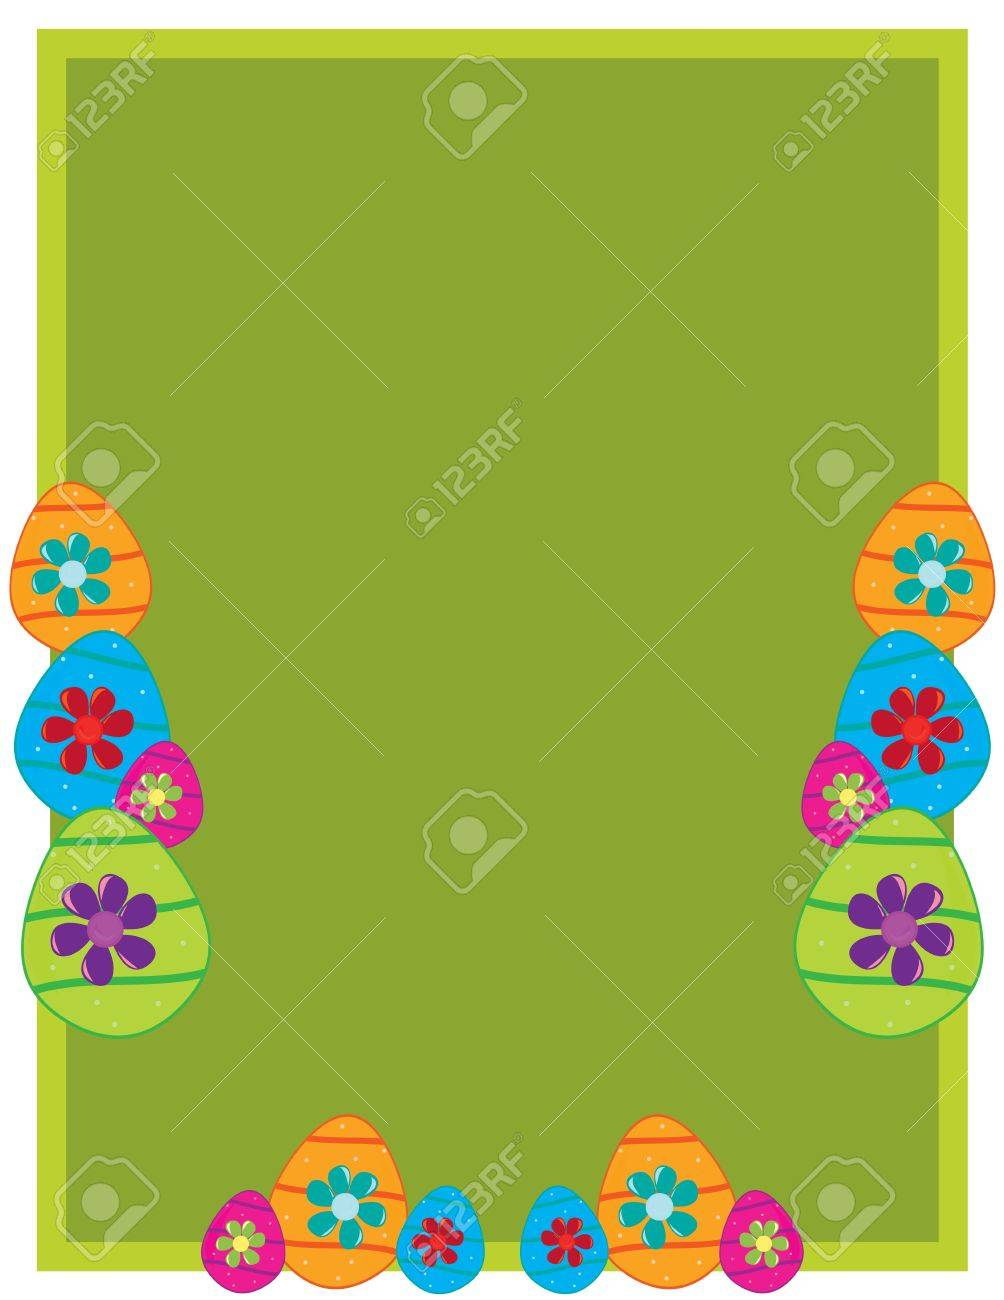 Green rectangular frame with Easter eggs and flowers on a white background Stock Vector - 7315116